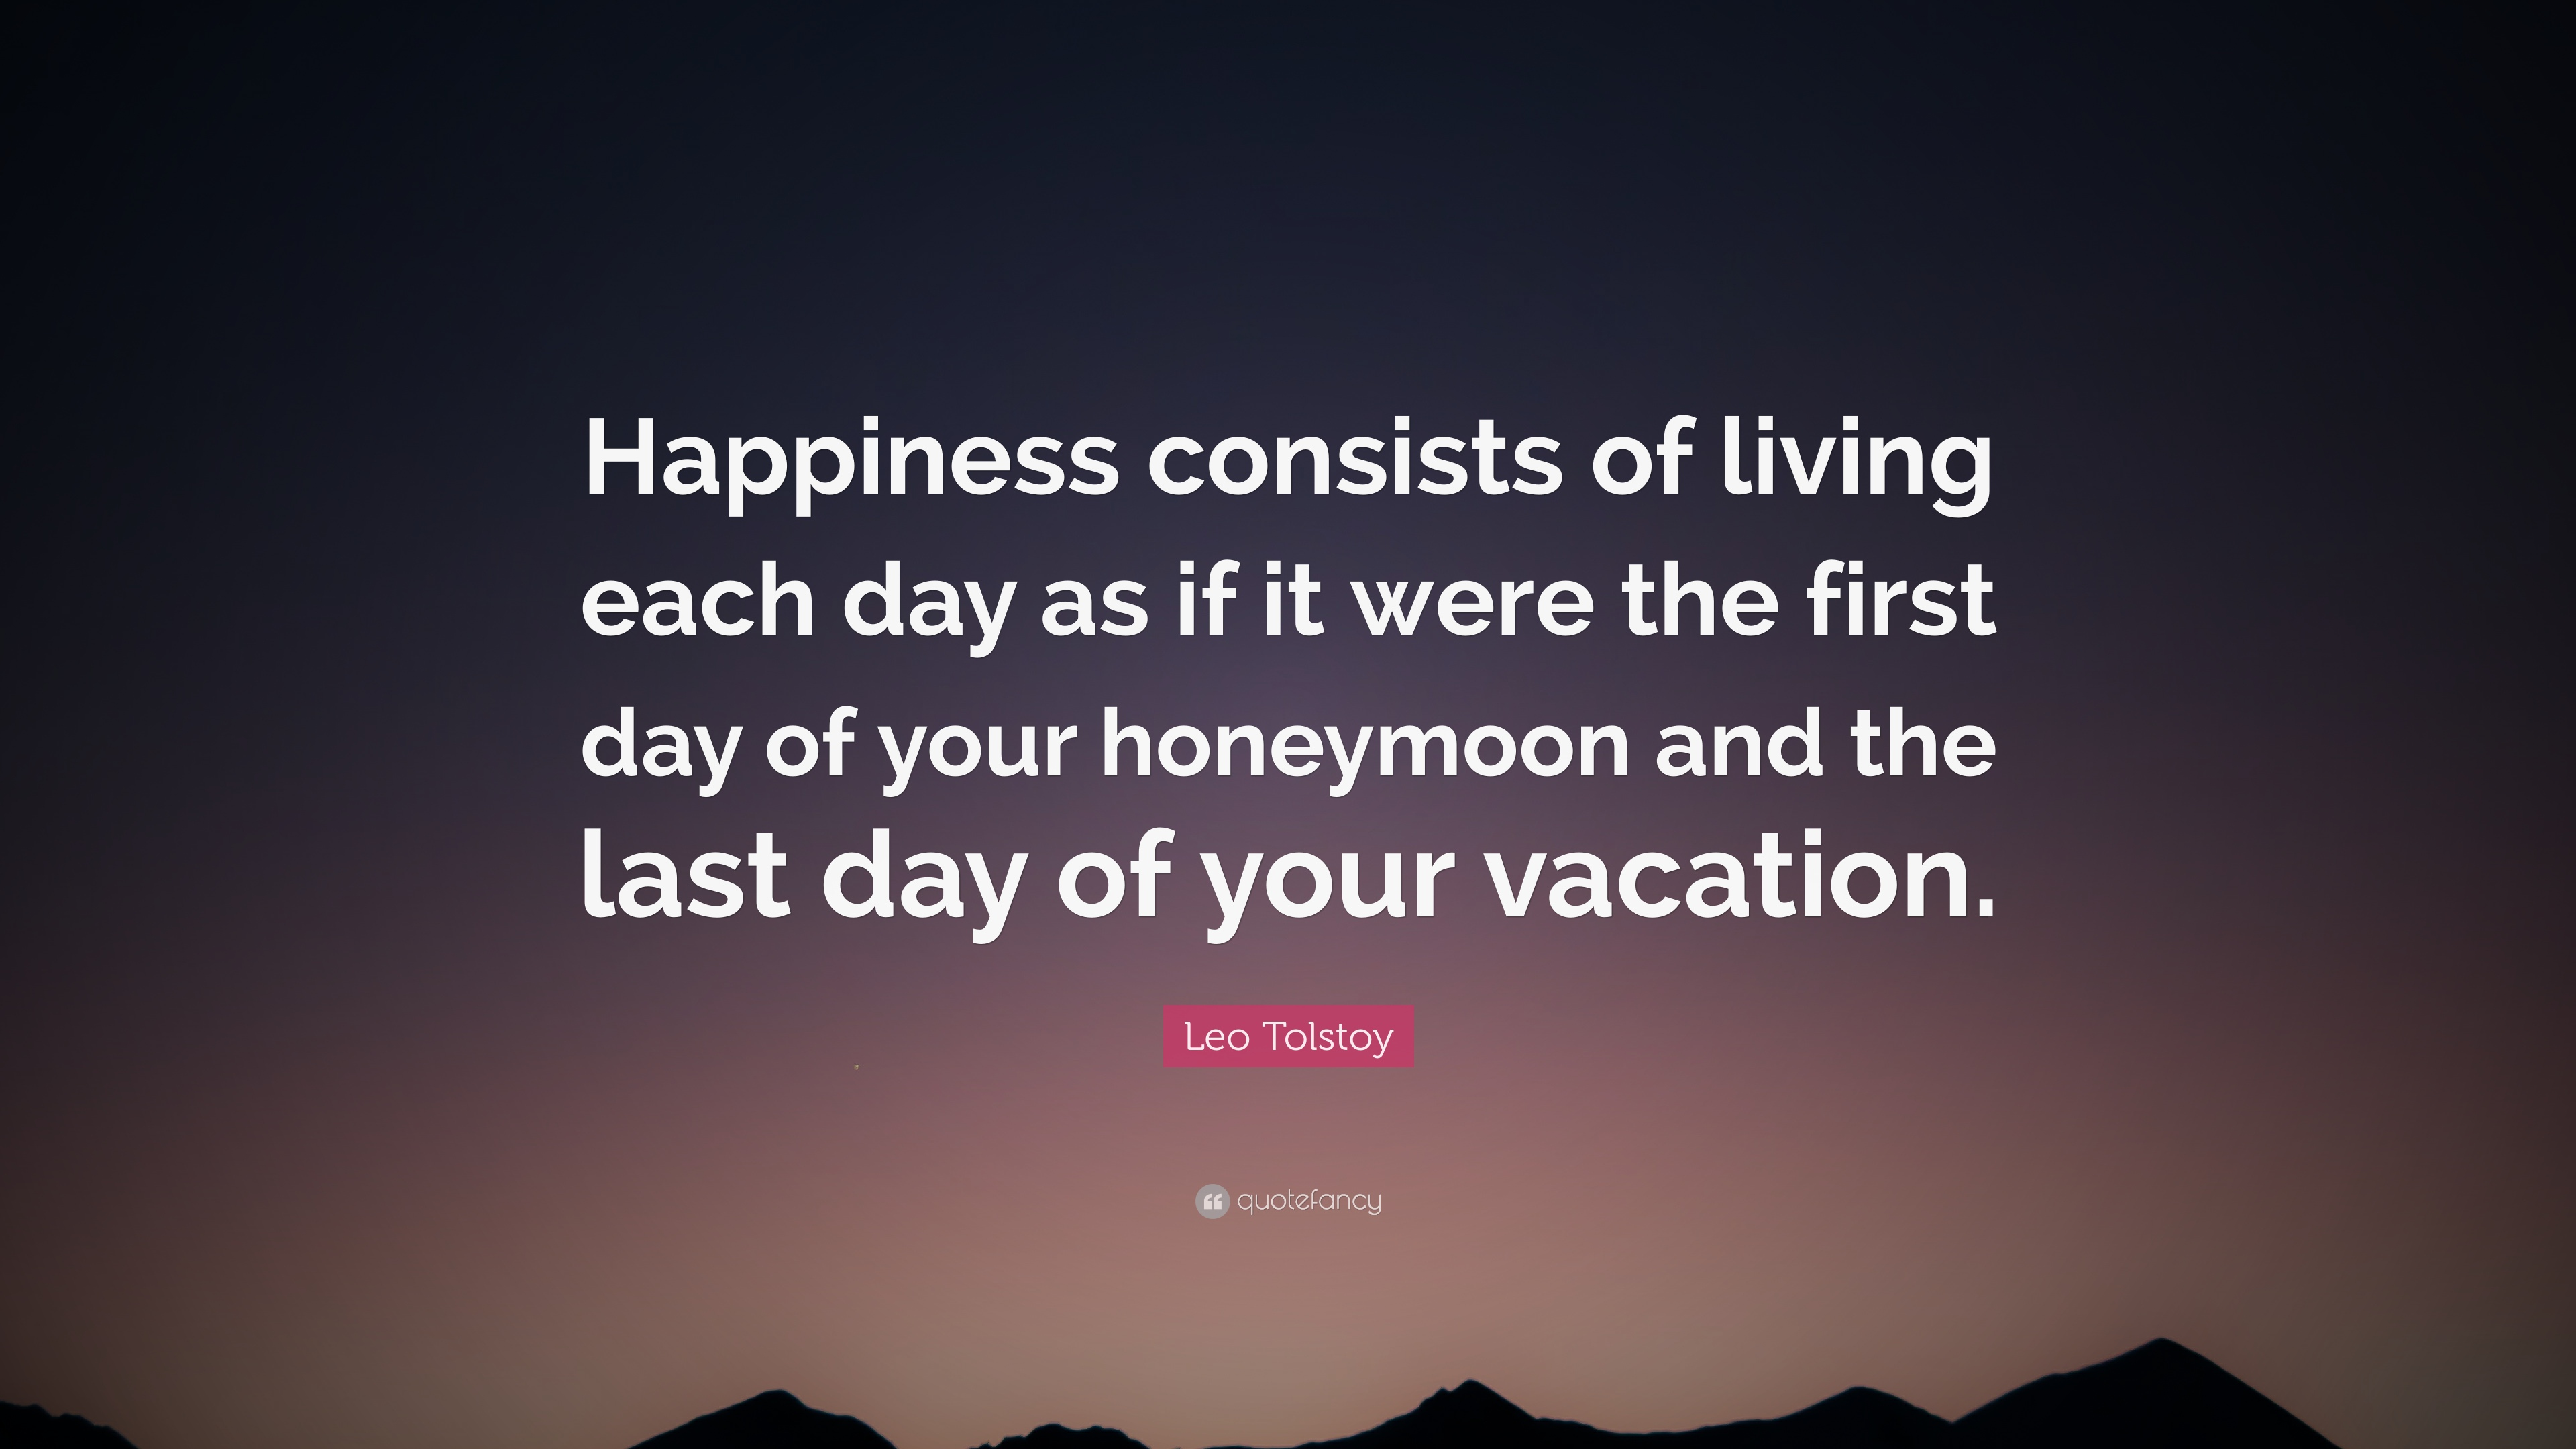 Leo Tolstoy Quote Happiness Consists Of Living Each Day As If It